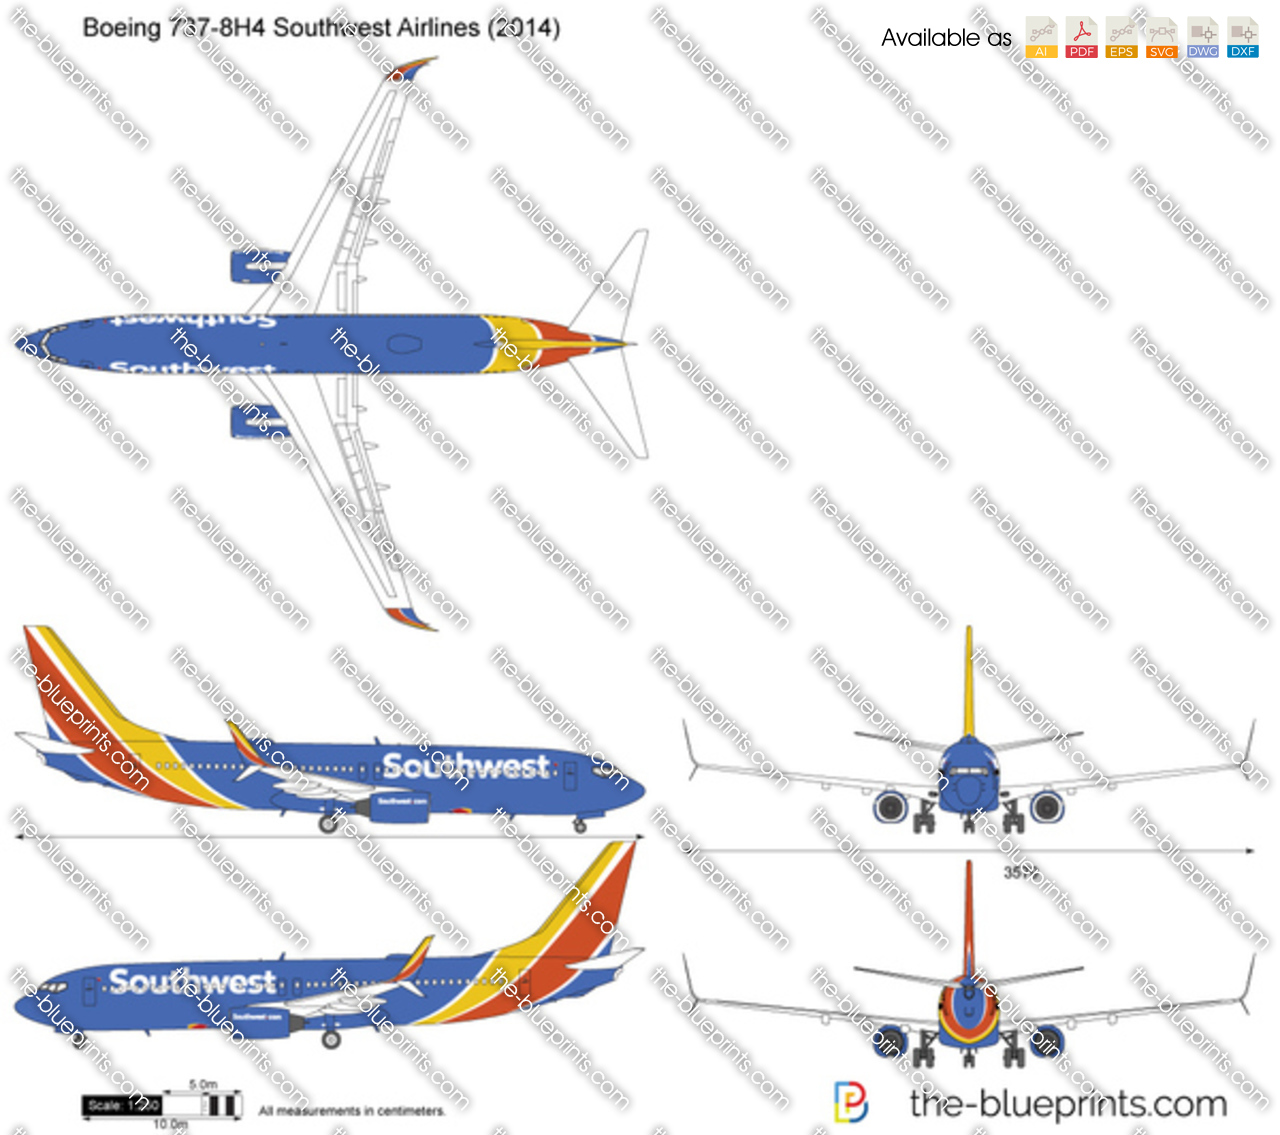 Boeing 737-8H4 Southwest Airlines 2015